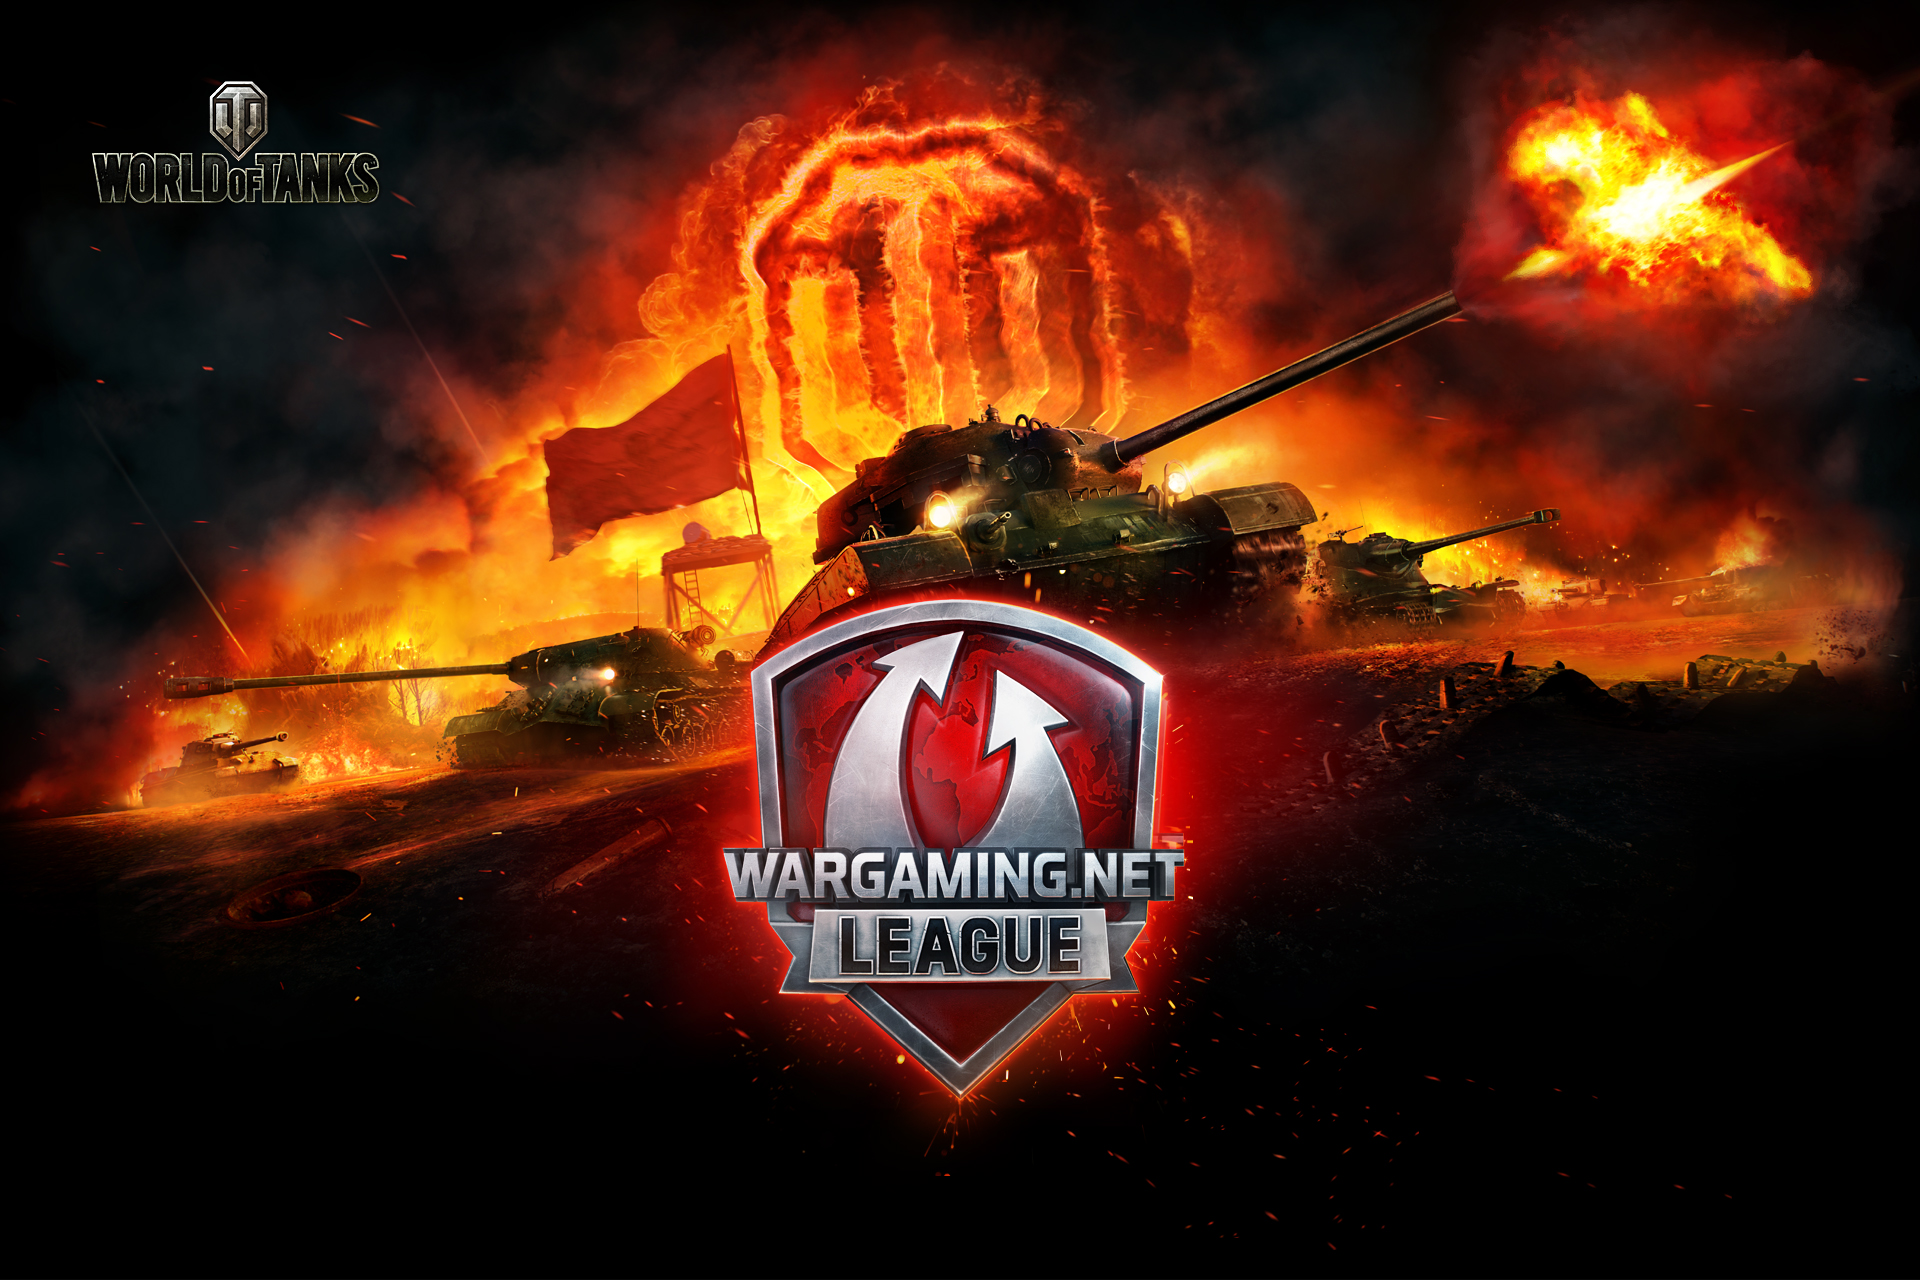 Wargaming.Net League North America 2013 Season 1 неделя 1, день 3